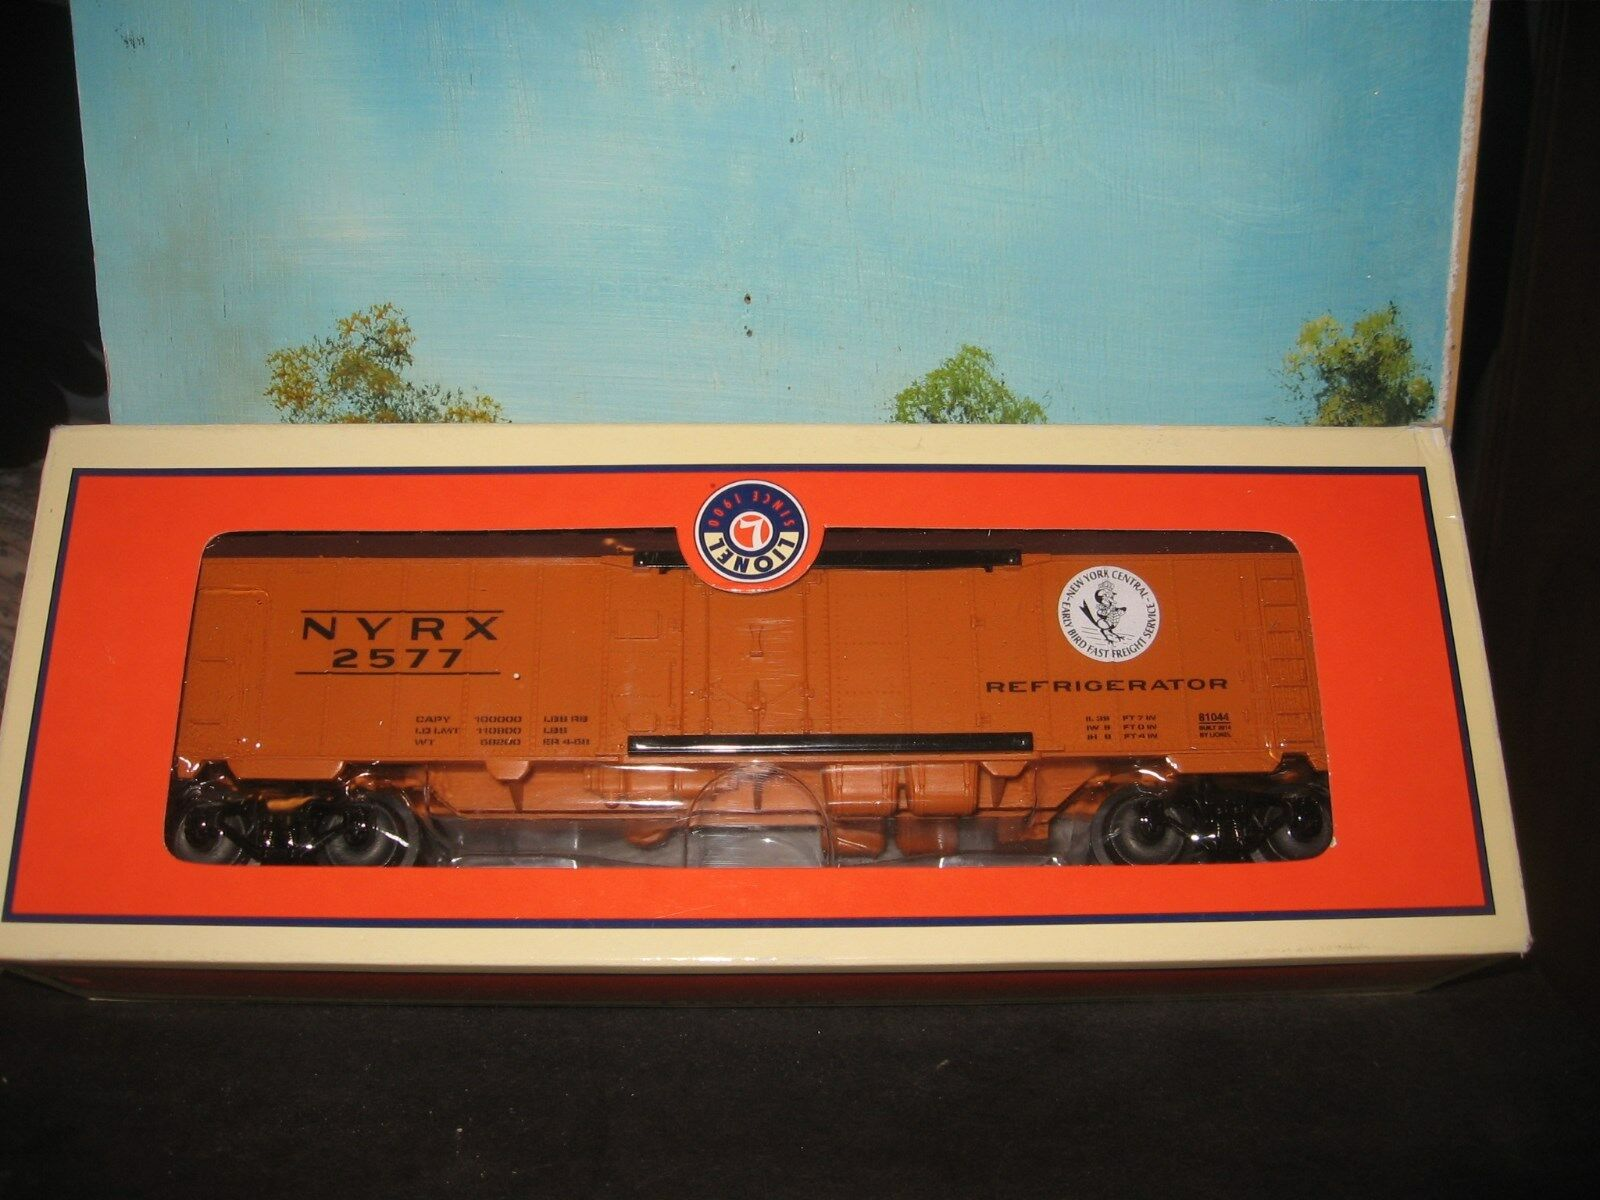 LIONEL 6-81044 NYRX MECHANICAL STEEL SIDED REEFER  2577